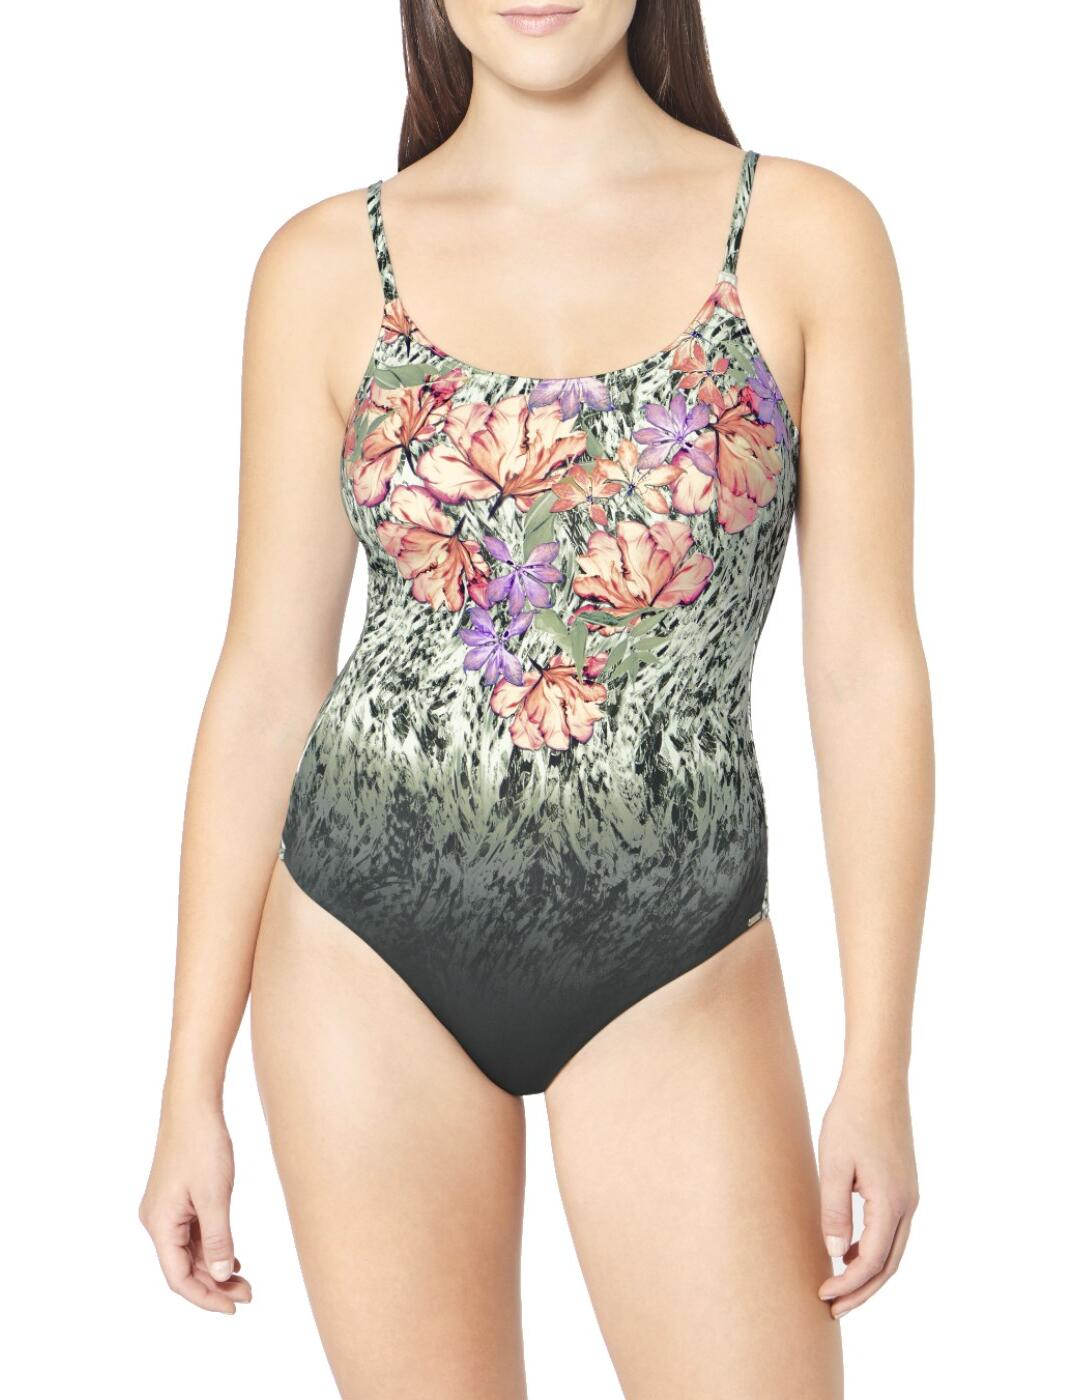 10195586 Triumph Floral Cascades Padded Swimsuit - 10195586 Green/Dark Combination